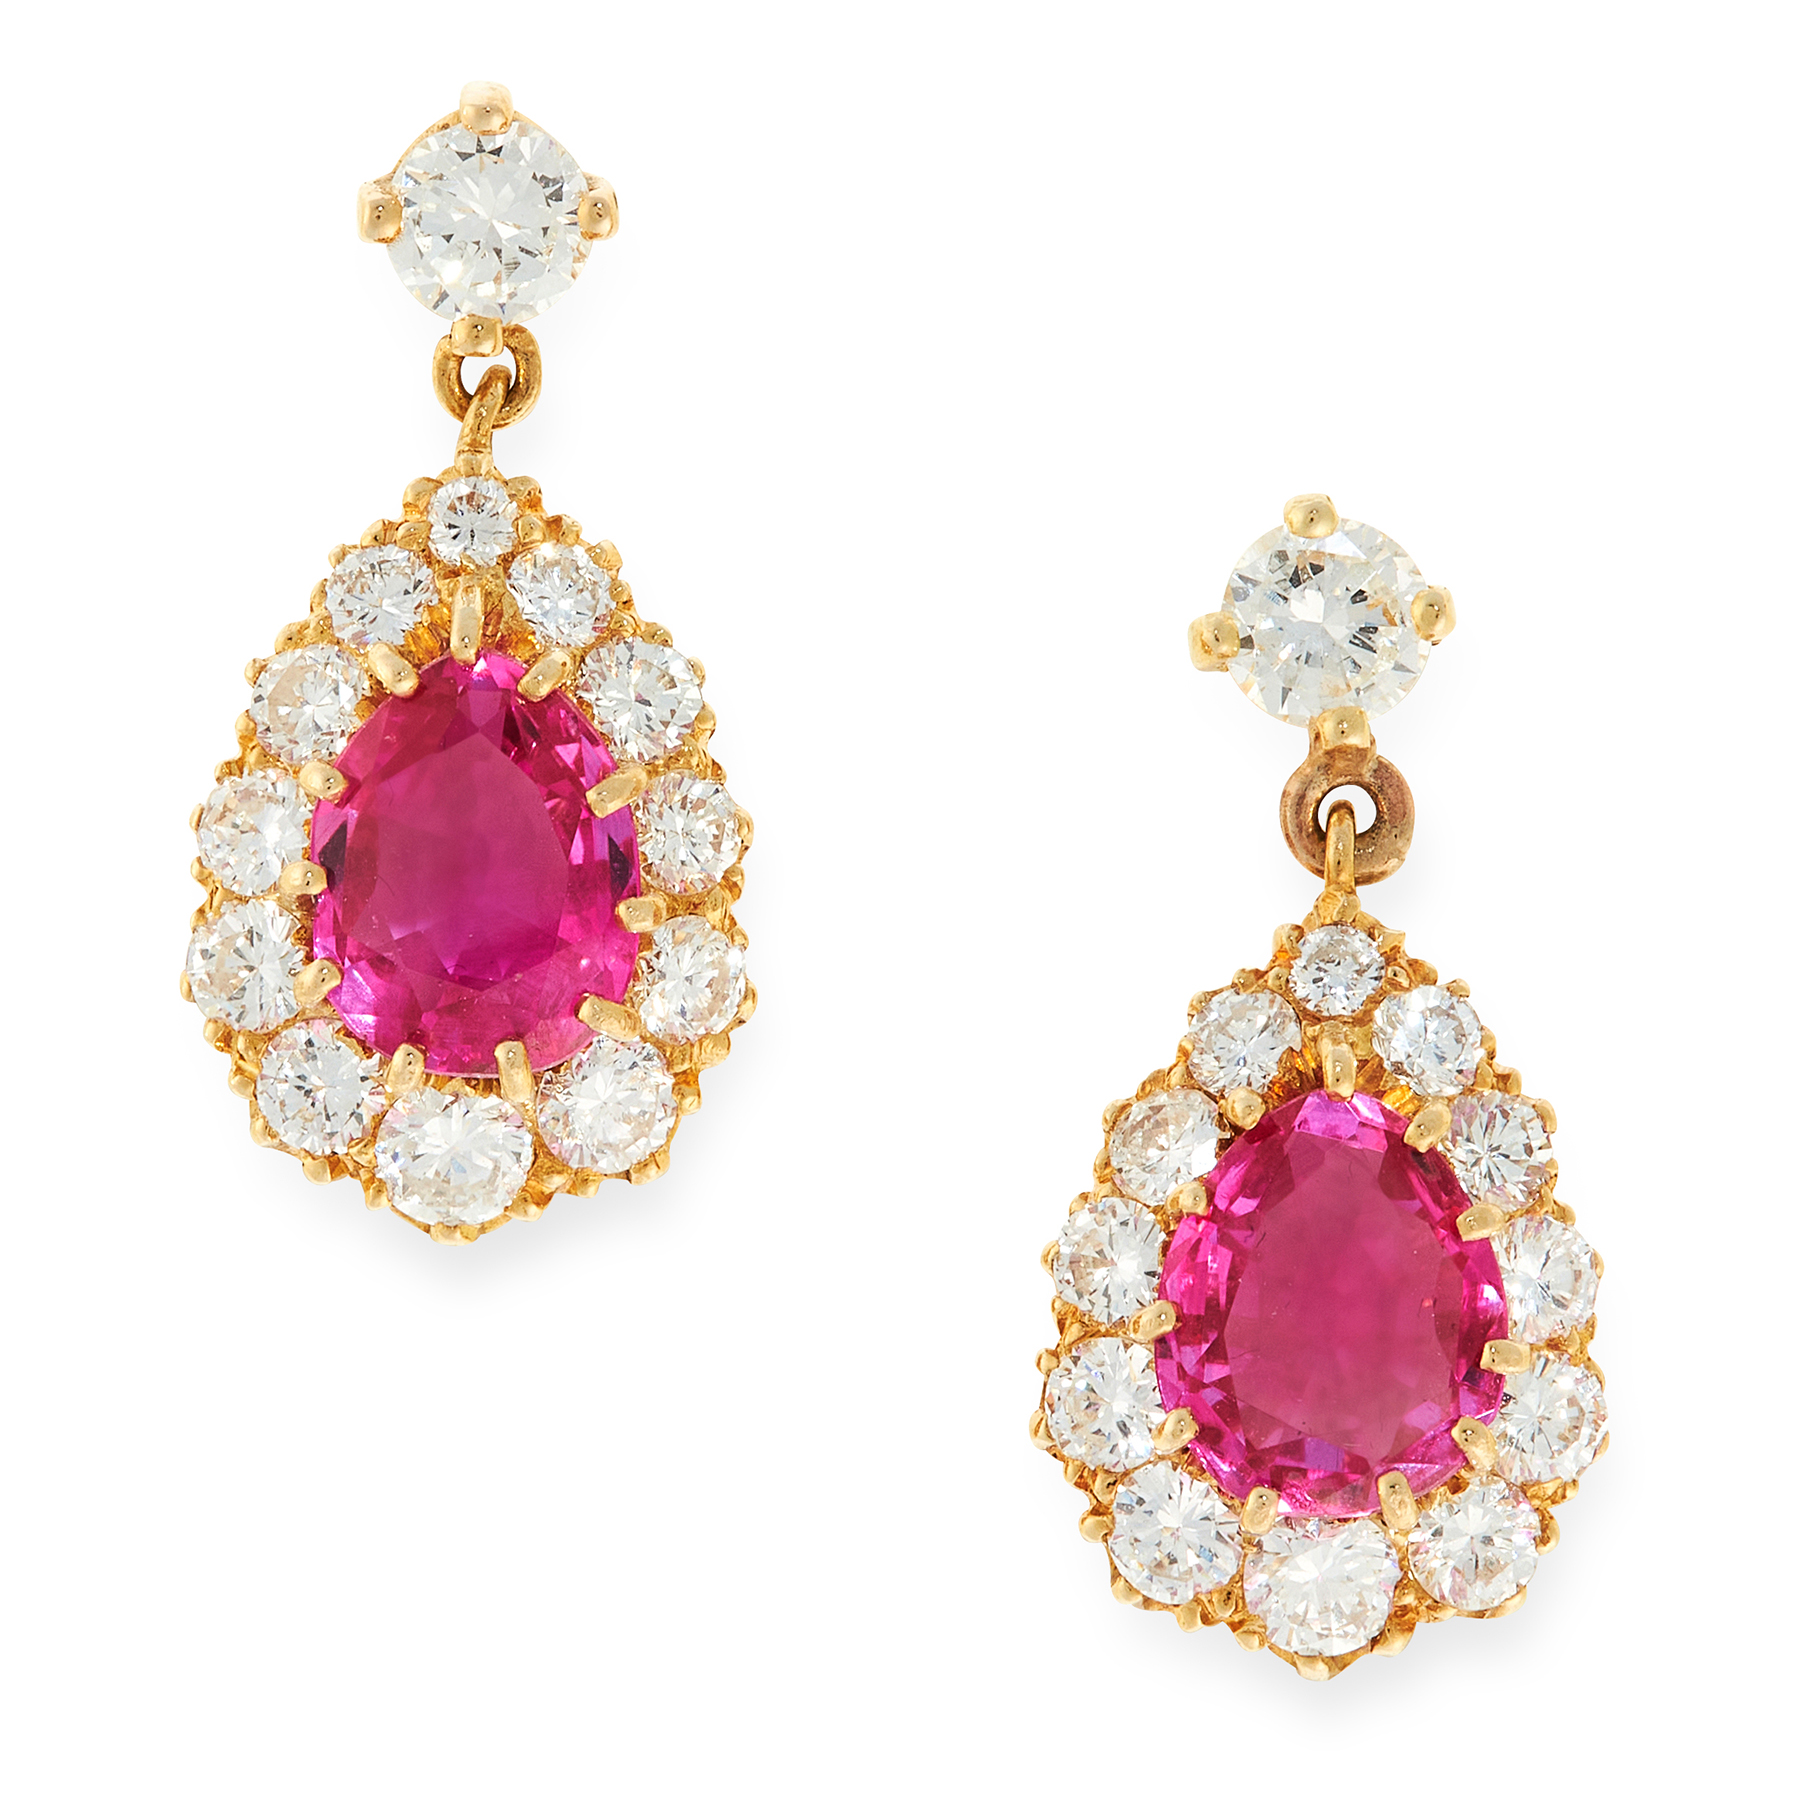 A PAIR OF BURMA NO HEAT RUBY AND DIAMOND EARRINGS in 18ct yellow gold, each set with a pear cut - Image 2 of 2